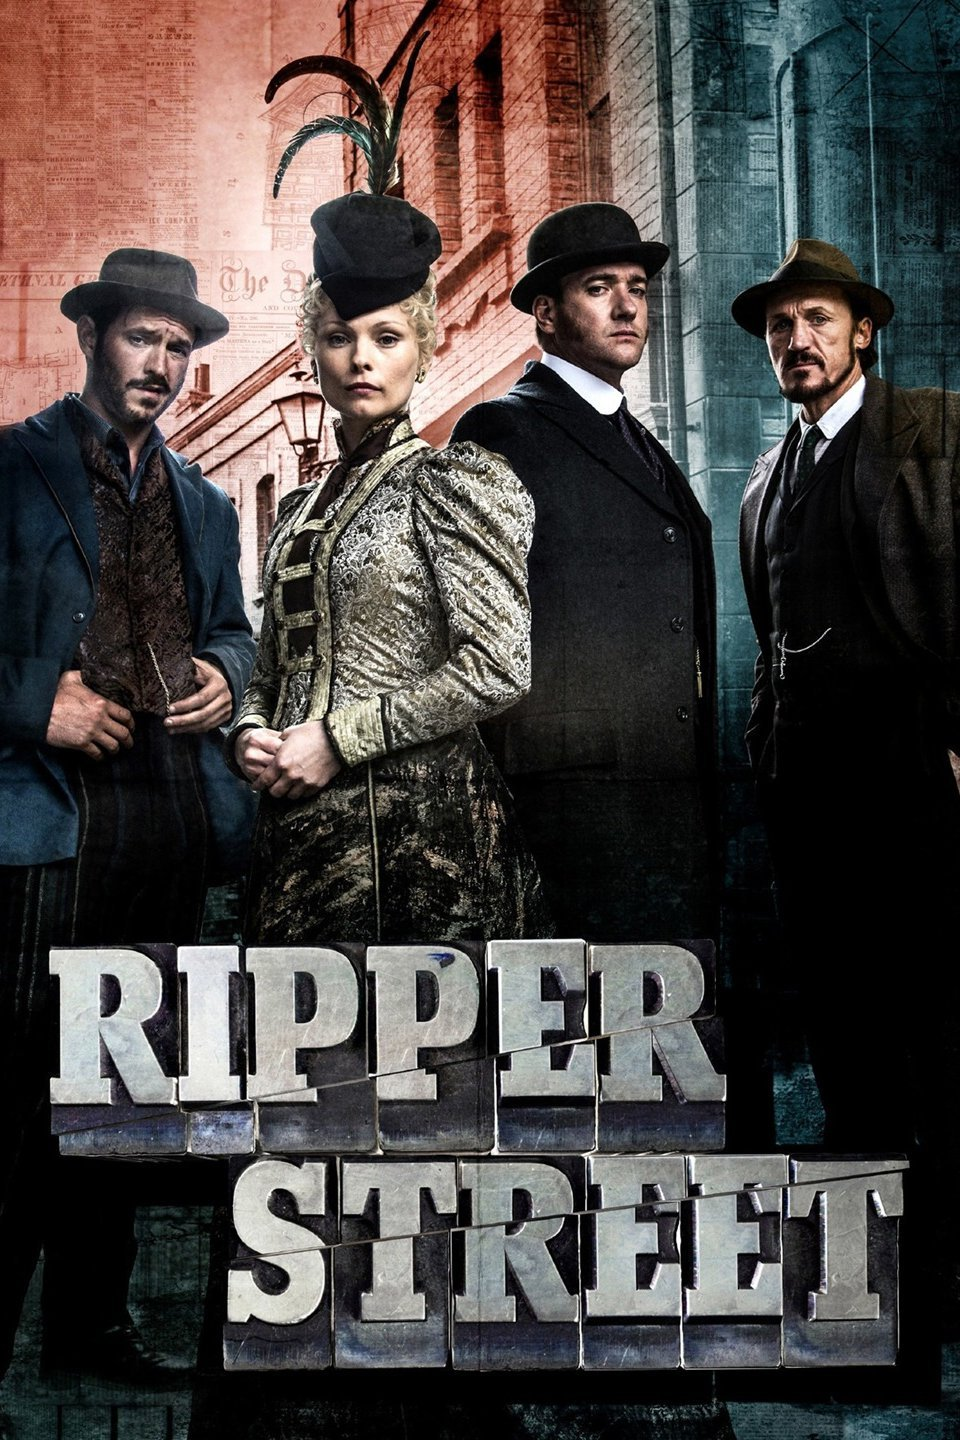 Ripper Street Tv Series Download Season 5 Episode 1 HDTV Micromkv